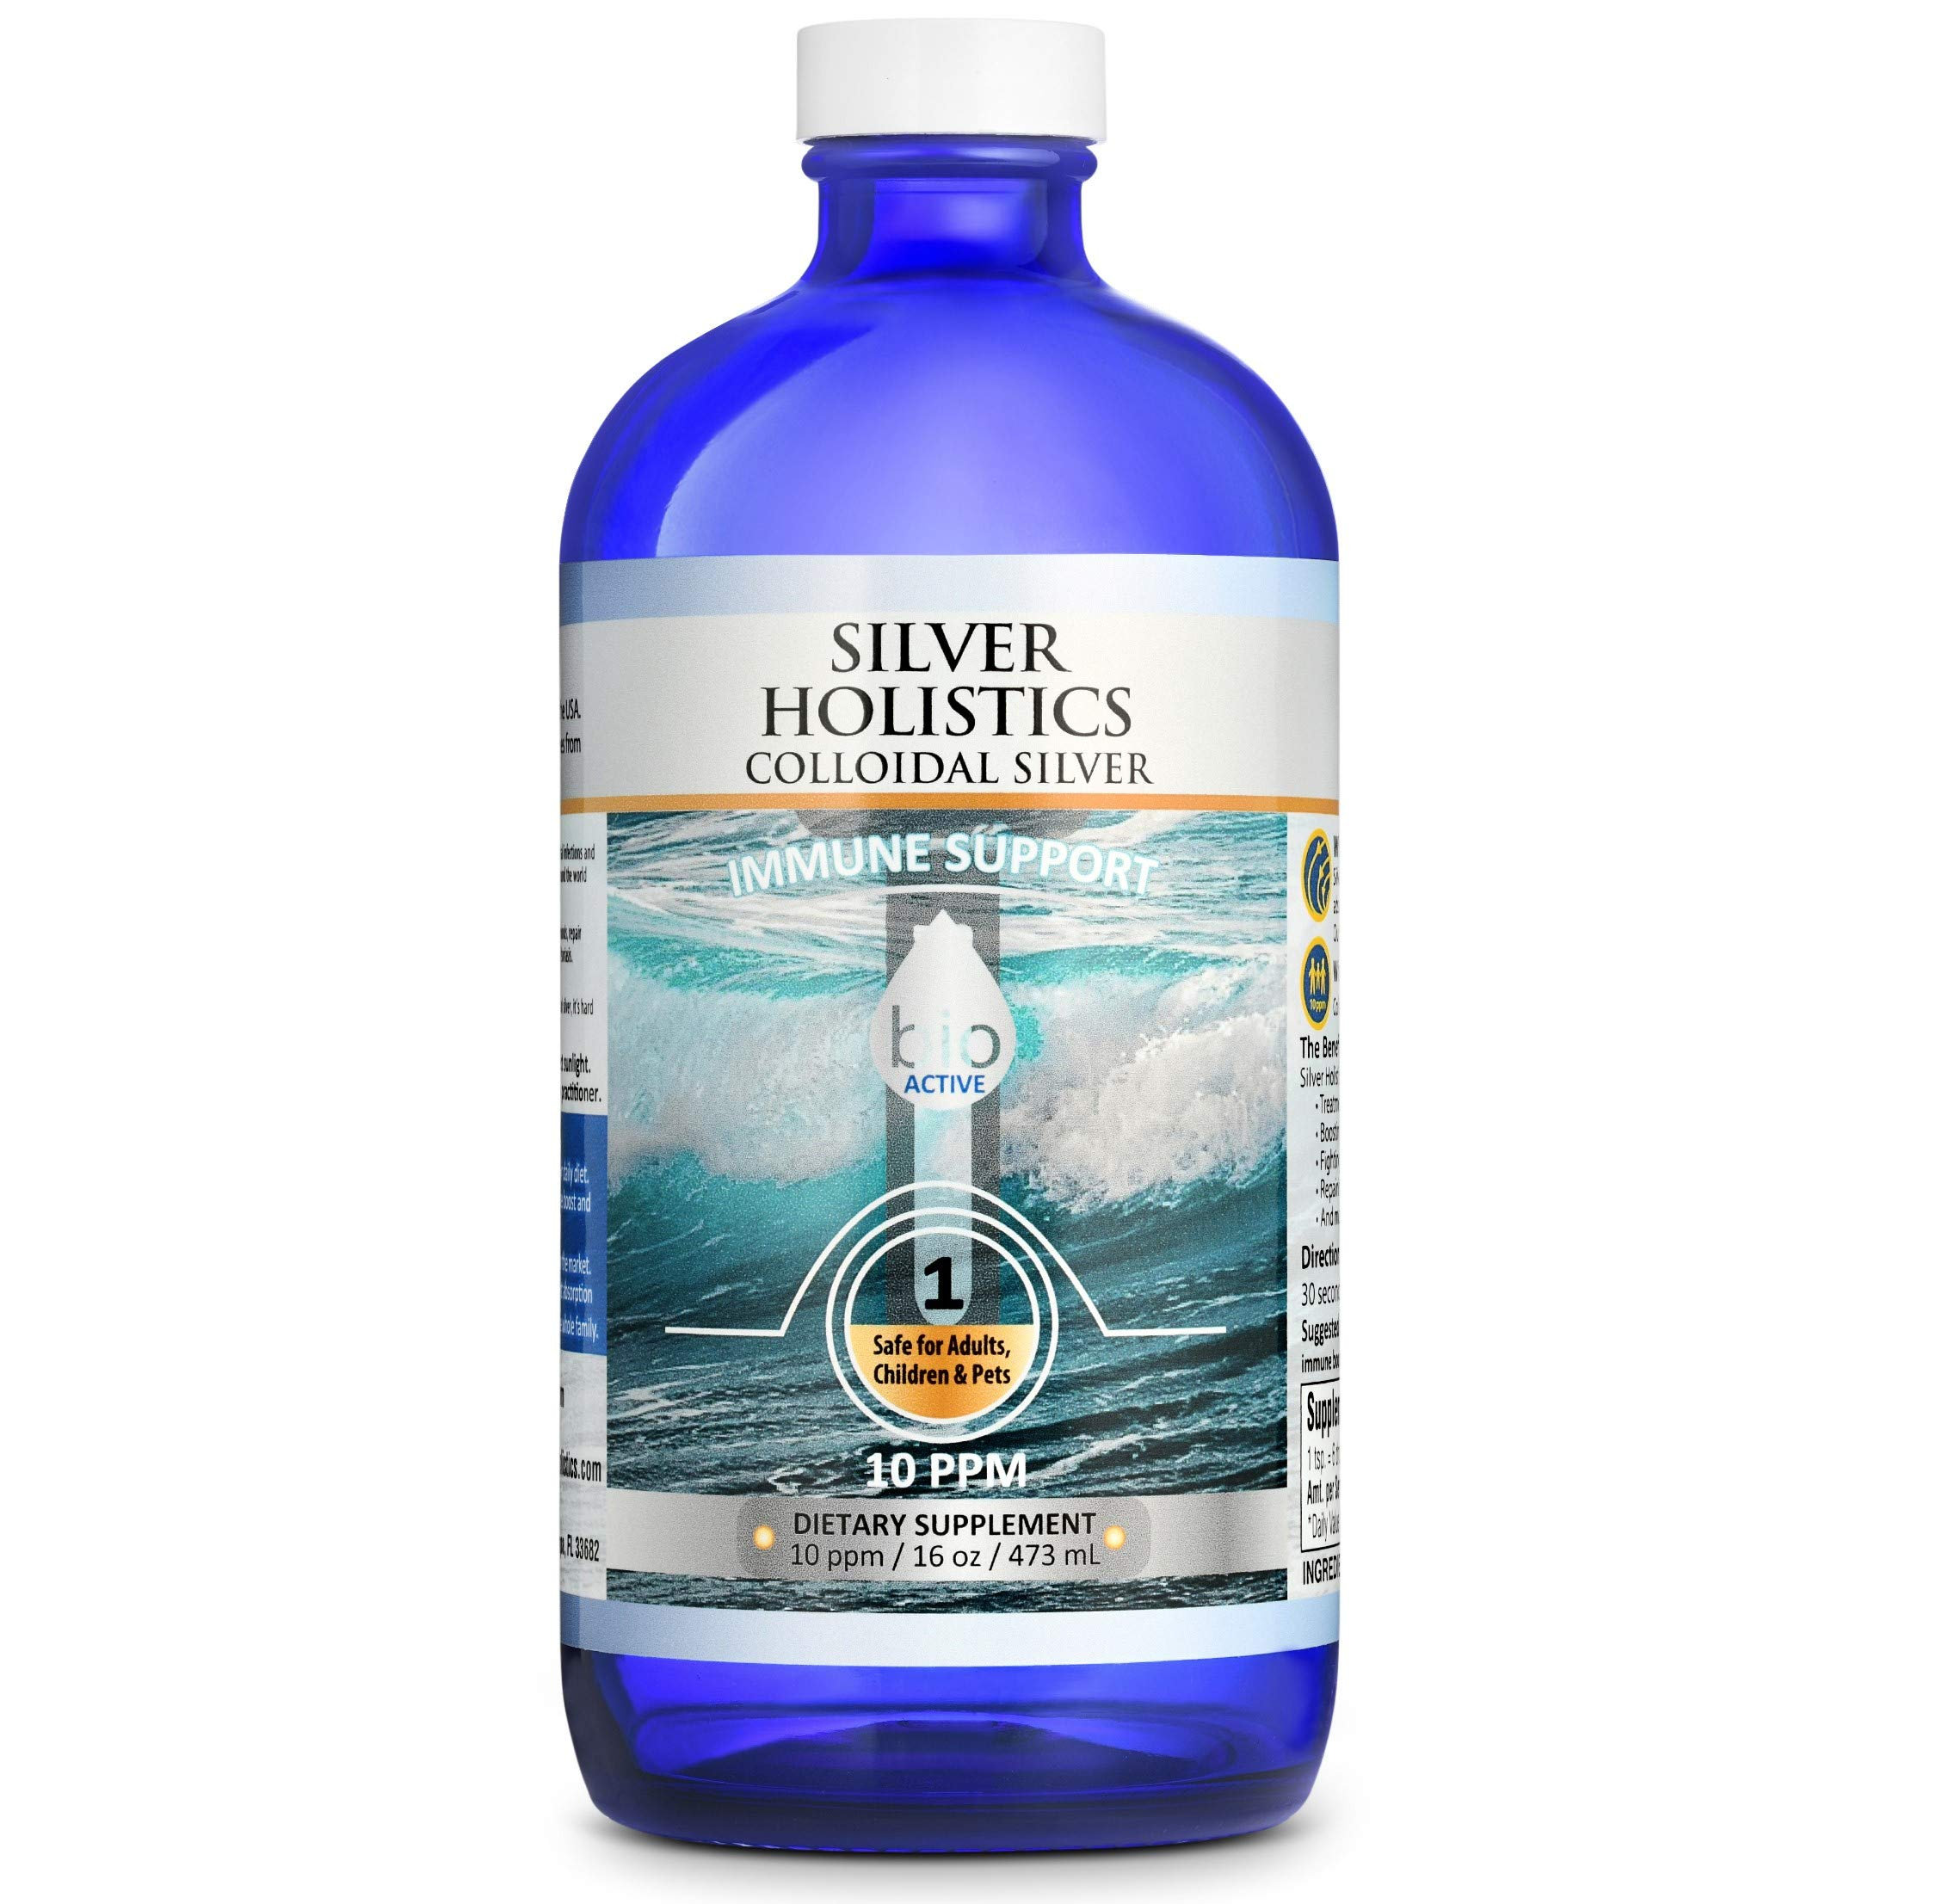 Silver Holistics   Colloidal Silver Liquid   Natural Immune System Booster   Pure 10 PPM Ionic Silver Water   Daily Mineral Supplement   16 oz. Glass Bottle   Safe for Pets by Silver Holistics